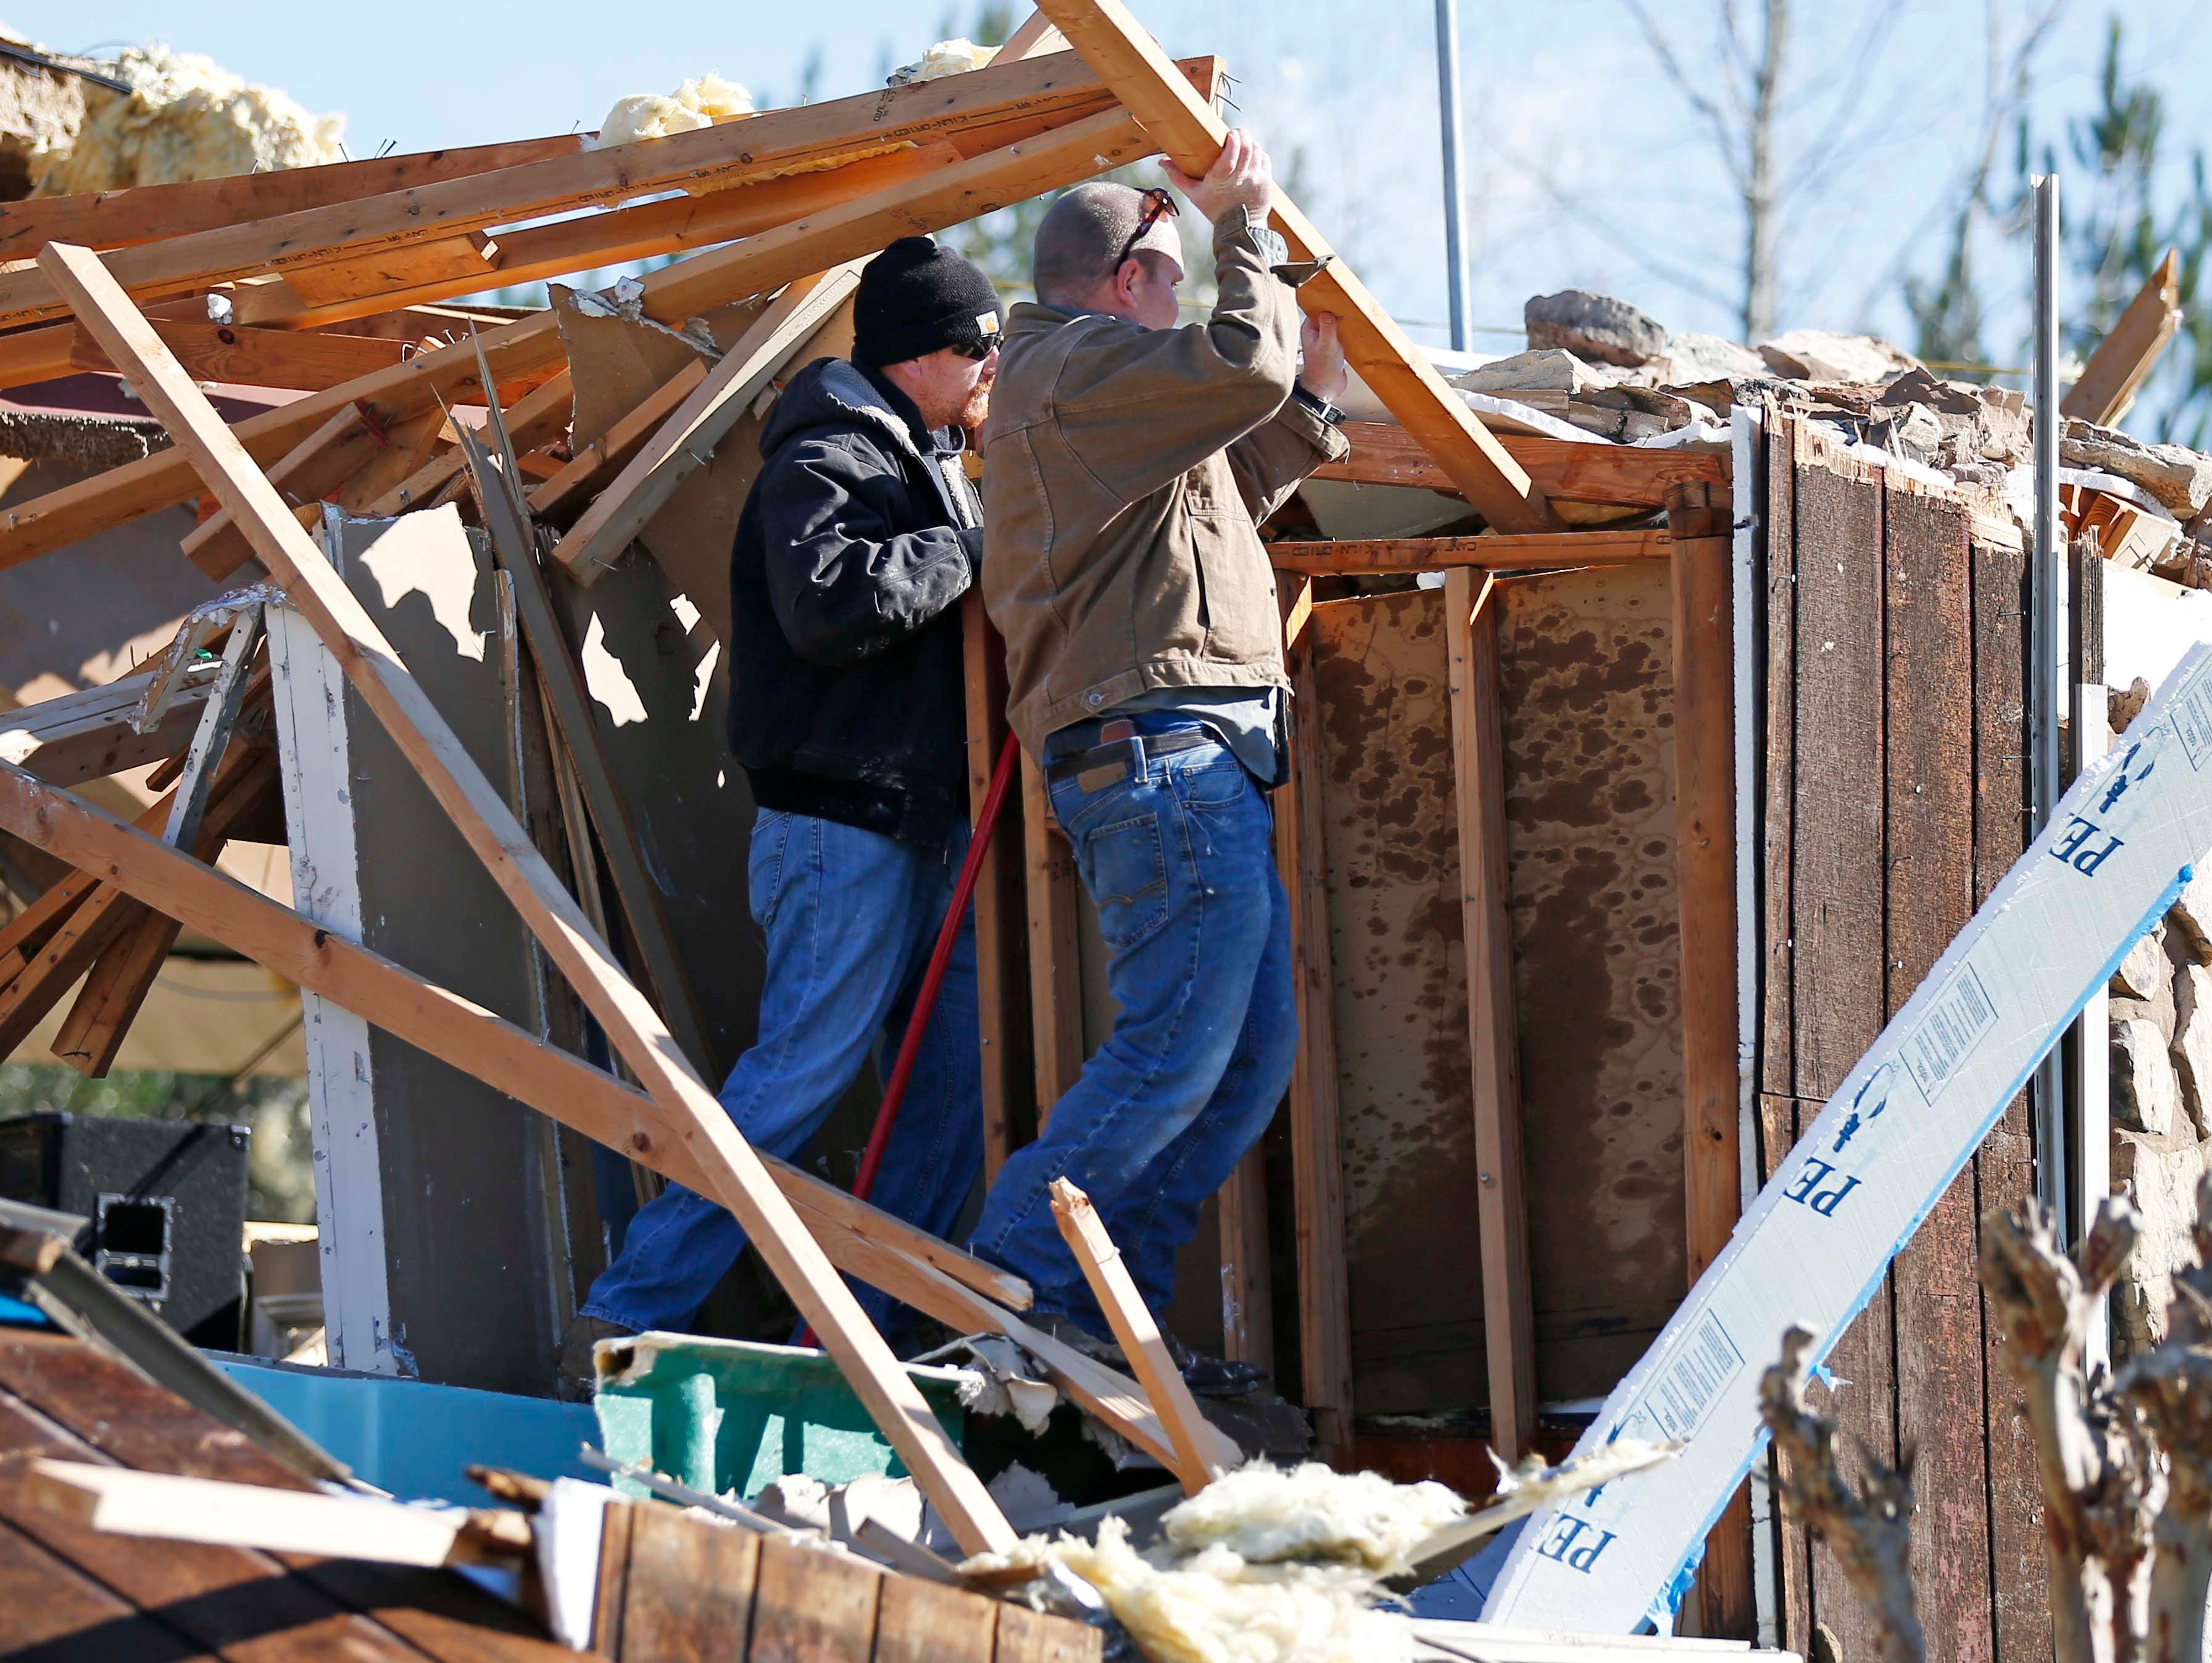 Church members lift beams as they try to determine the status of a Hammond organ that was trapped by tornado debris in the First Pentecostal Church in Columbus, Miss., Sunday morning, Feb. 24, 2019. At least one person was killed in town by Saturday's storm that shattered businesses and wrecked homes. (AP Photo/Rogelio V. Solis)